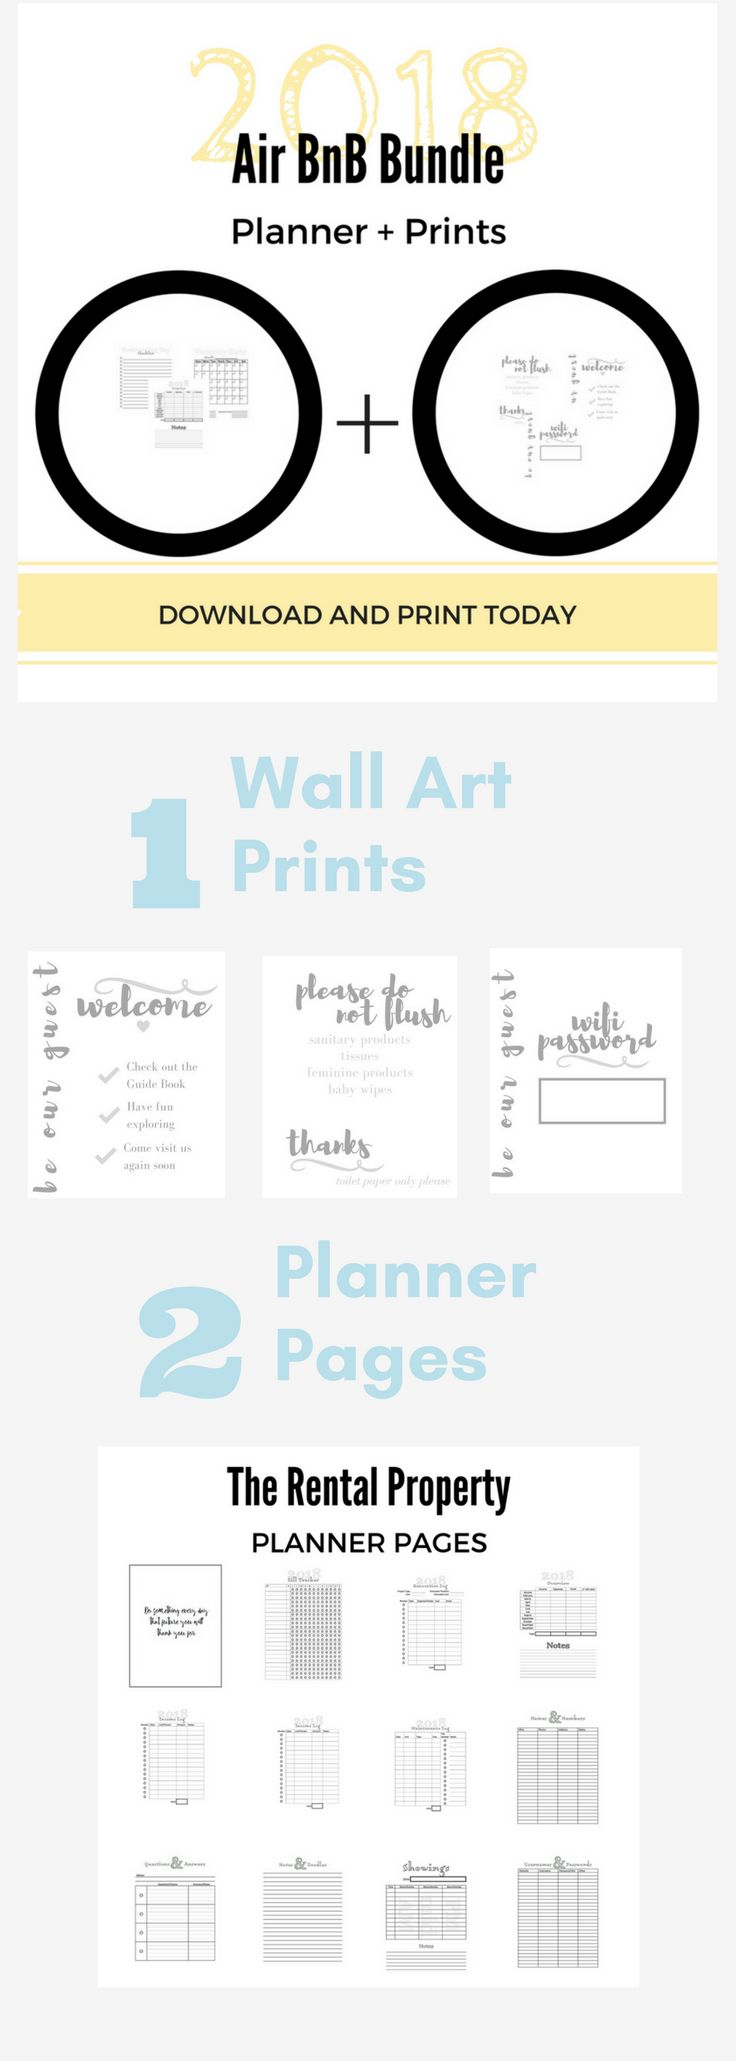 Managing an AirBnB or other vacation rental is a lot of work. Not only managing your check ins but also all the finance side of running a rental property. This bundle is just what you need to stay organized + decorate with beautiful and practical (print from home) home decor wall art. Add that special touch, get better ratings and be a more professional host. This printable property management kit is a great tool for income property owners and AirBnB hosts.